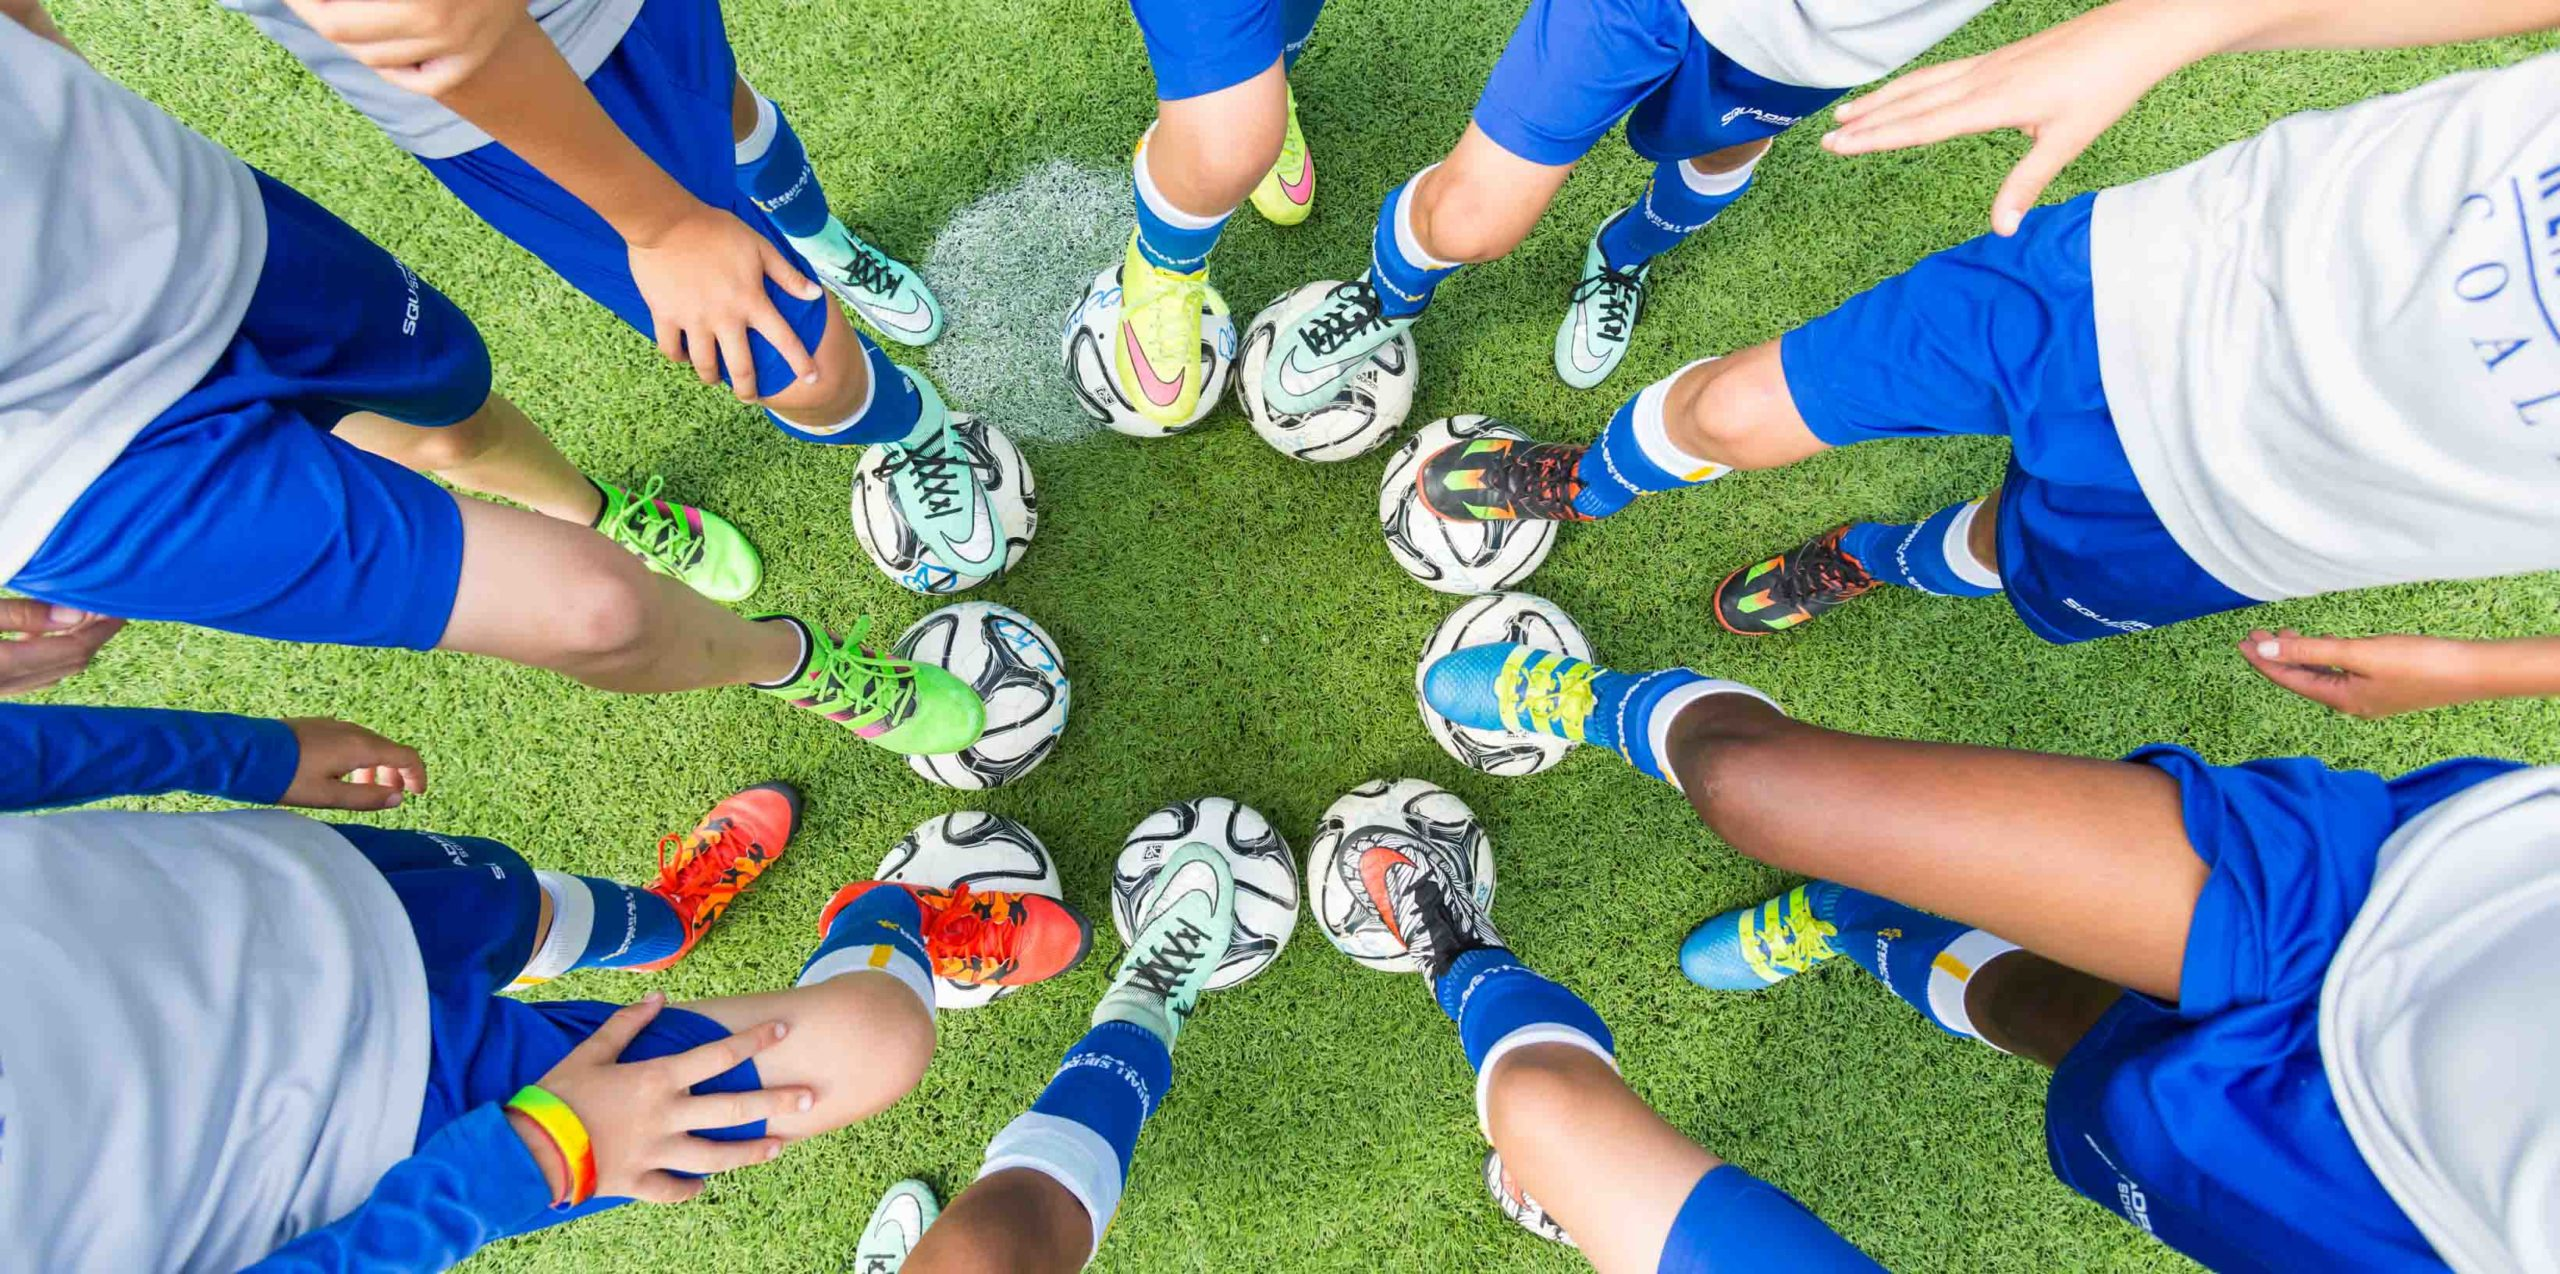 Students with feet on soccer balls